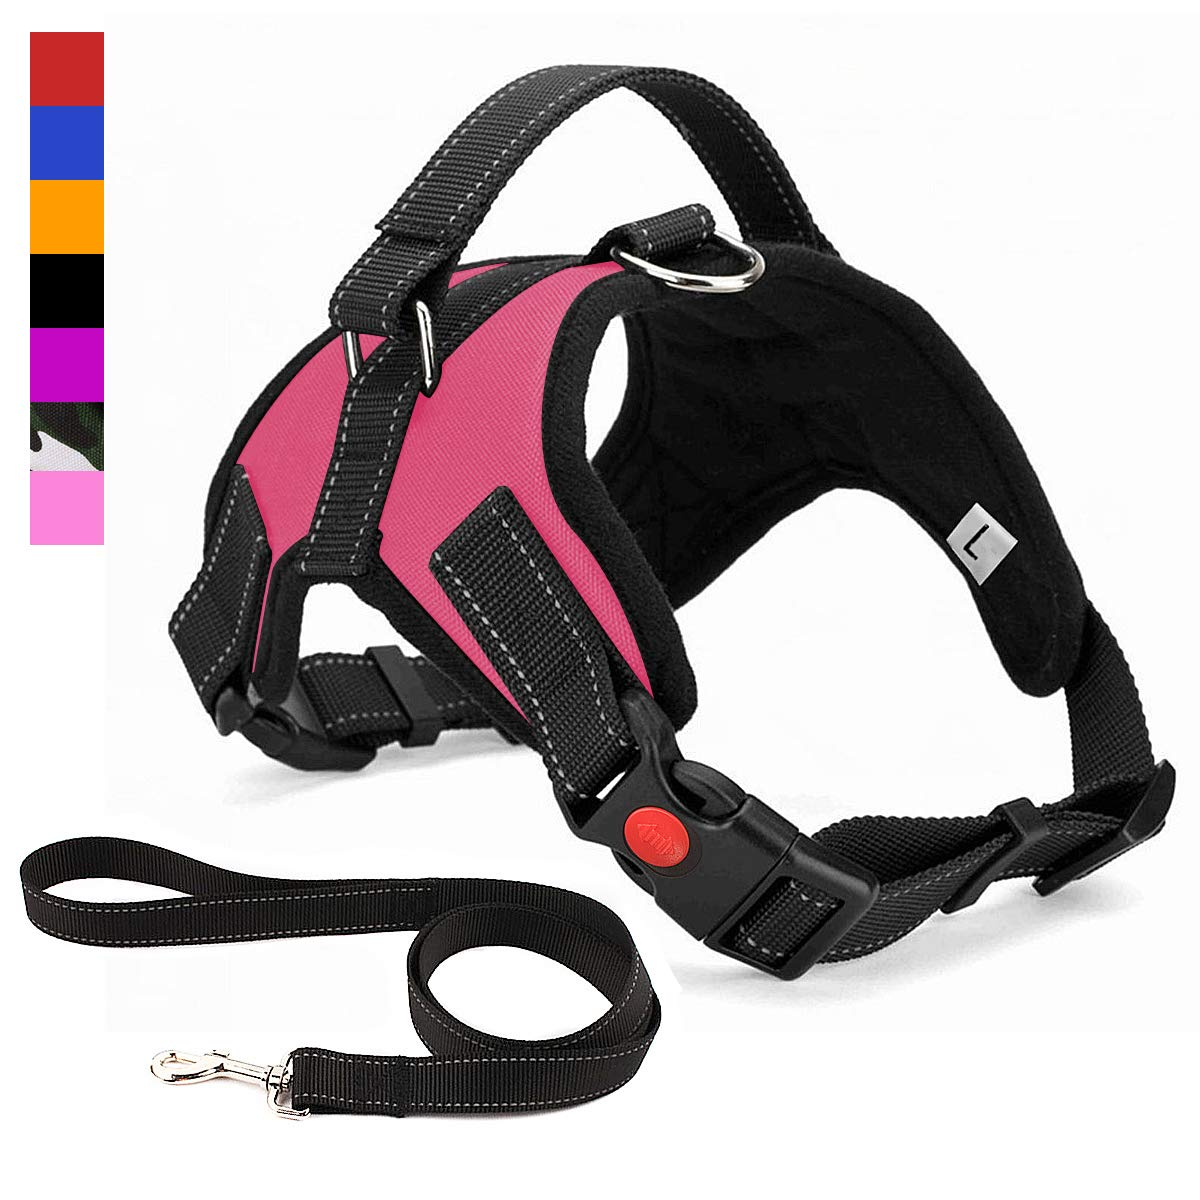 Best for Training Walking for Small Medium Large Dog Breathable Adjustable Comfort Free Lead Included Musonic No Pull Dog Harness Medium, Black